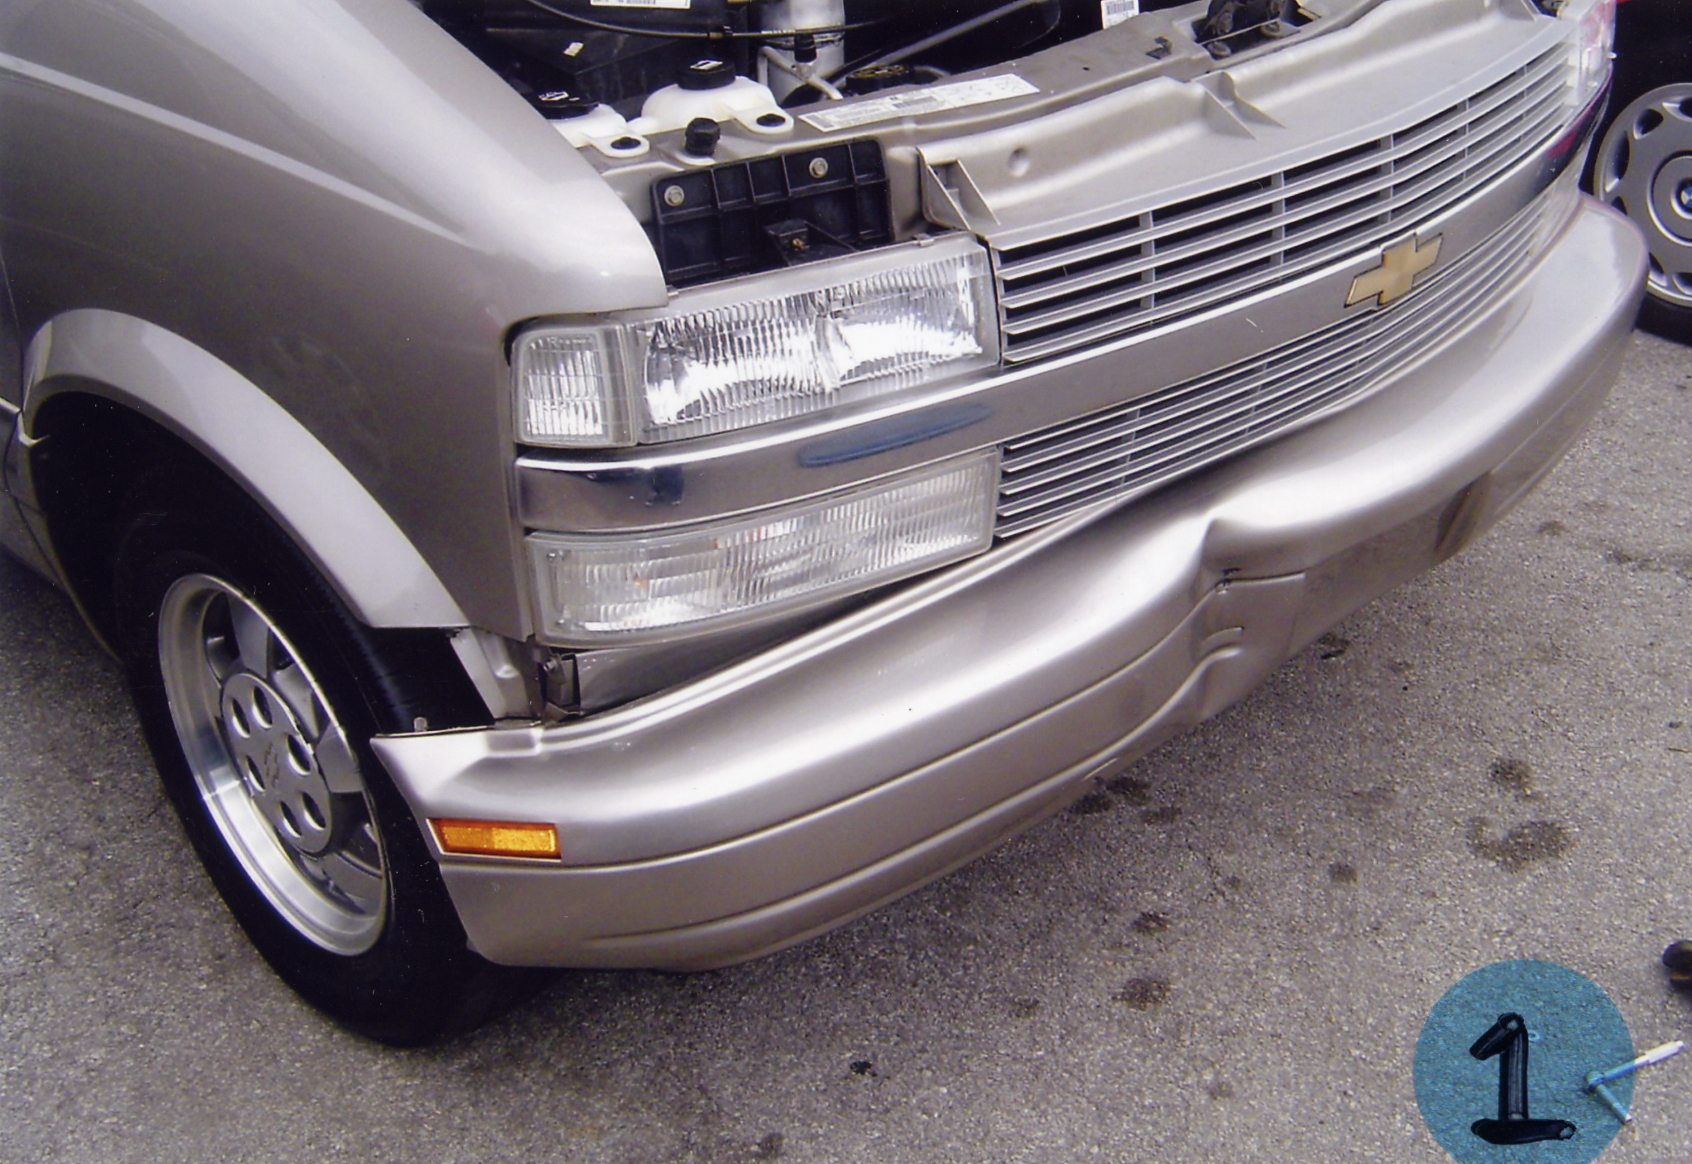 Before – After Photos | SoCal Mobile Bumper Repair - Before